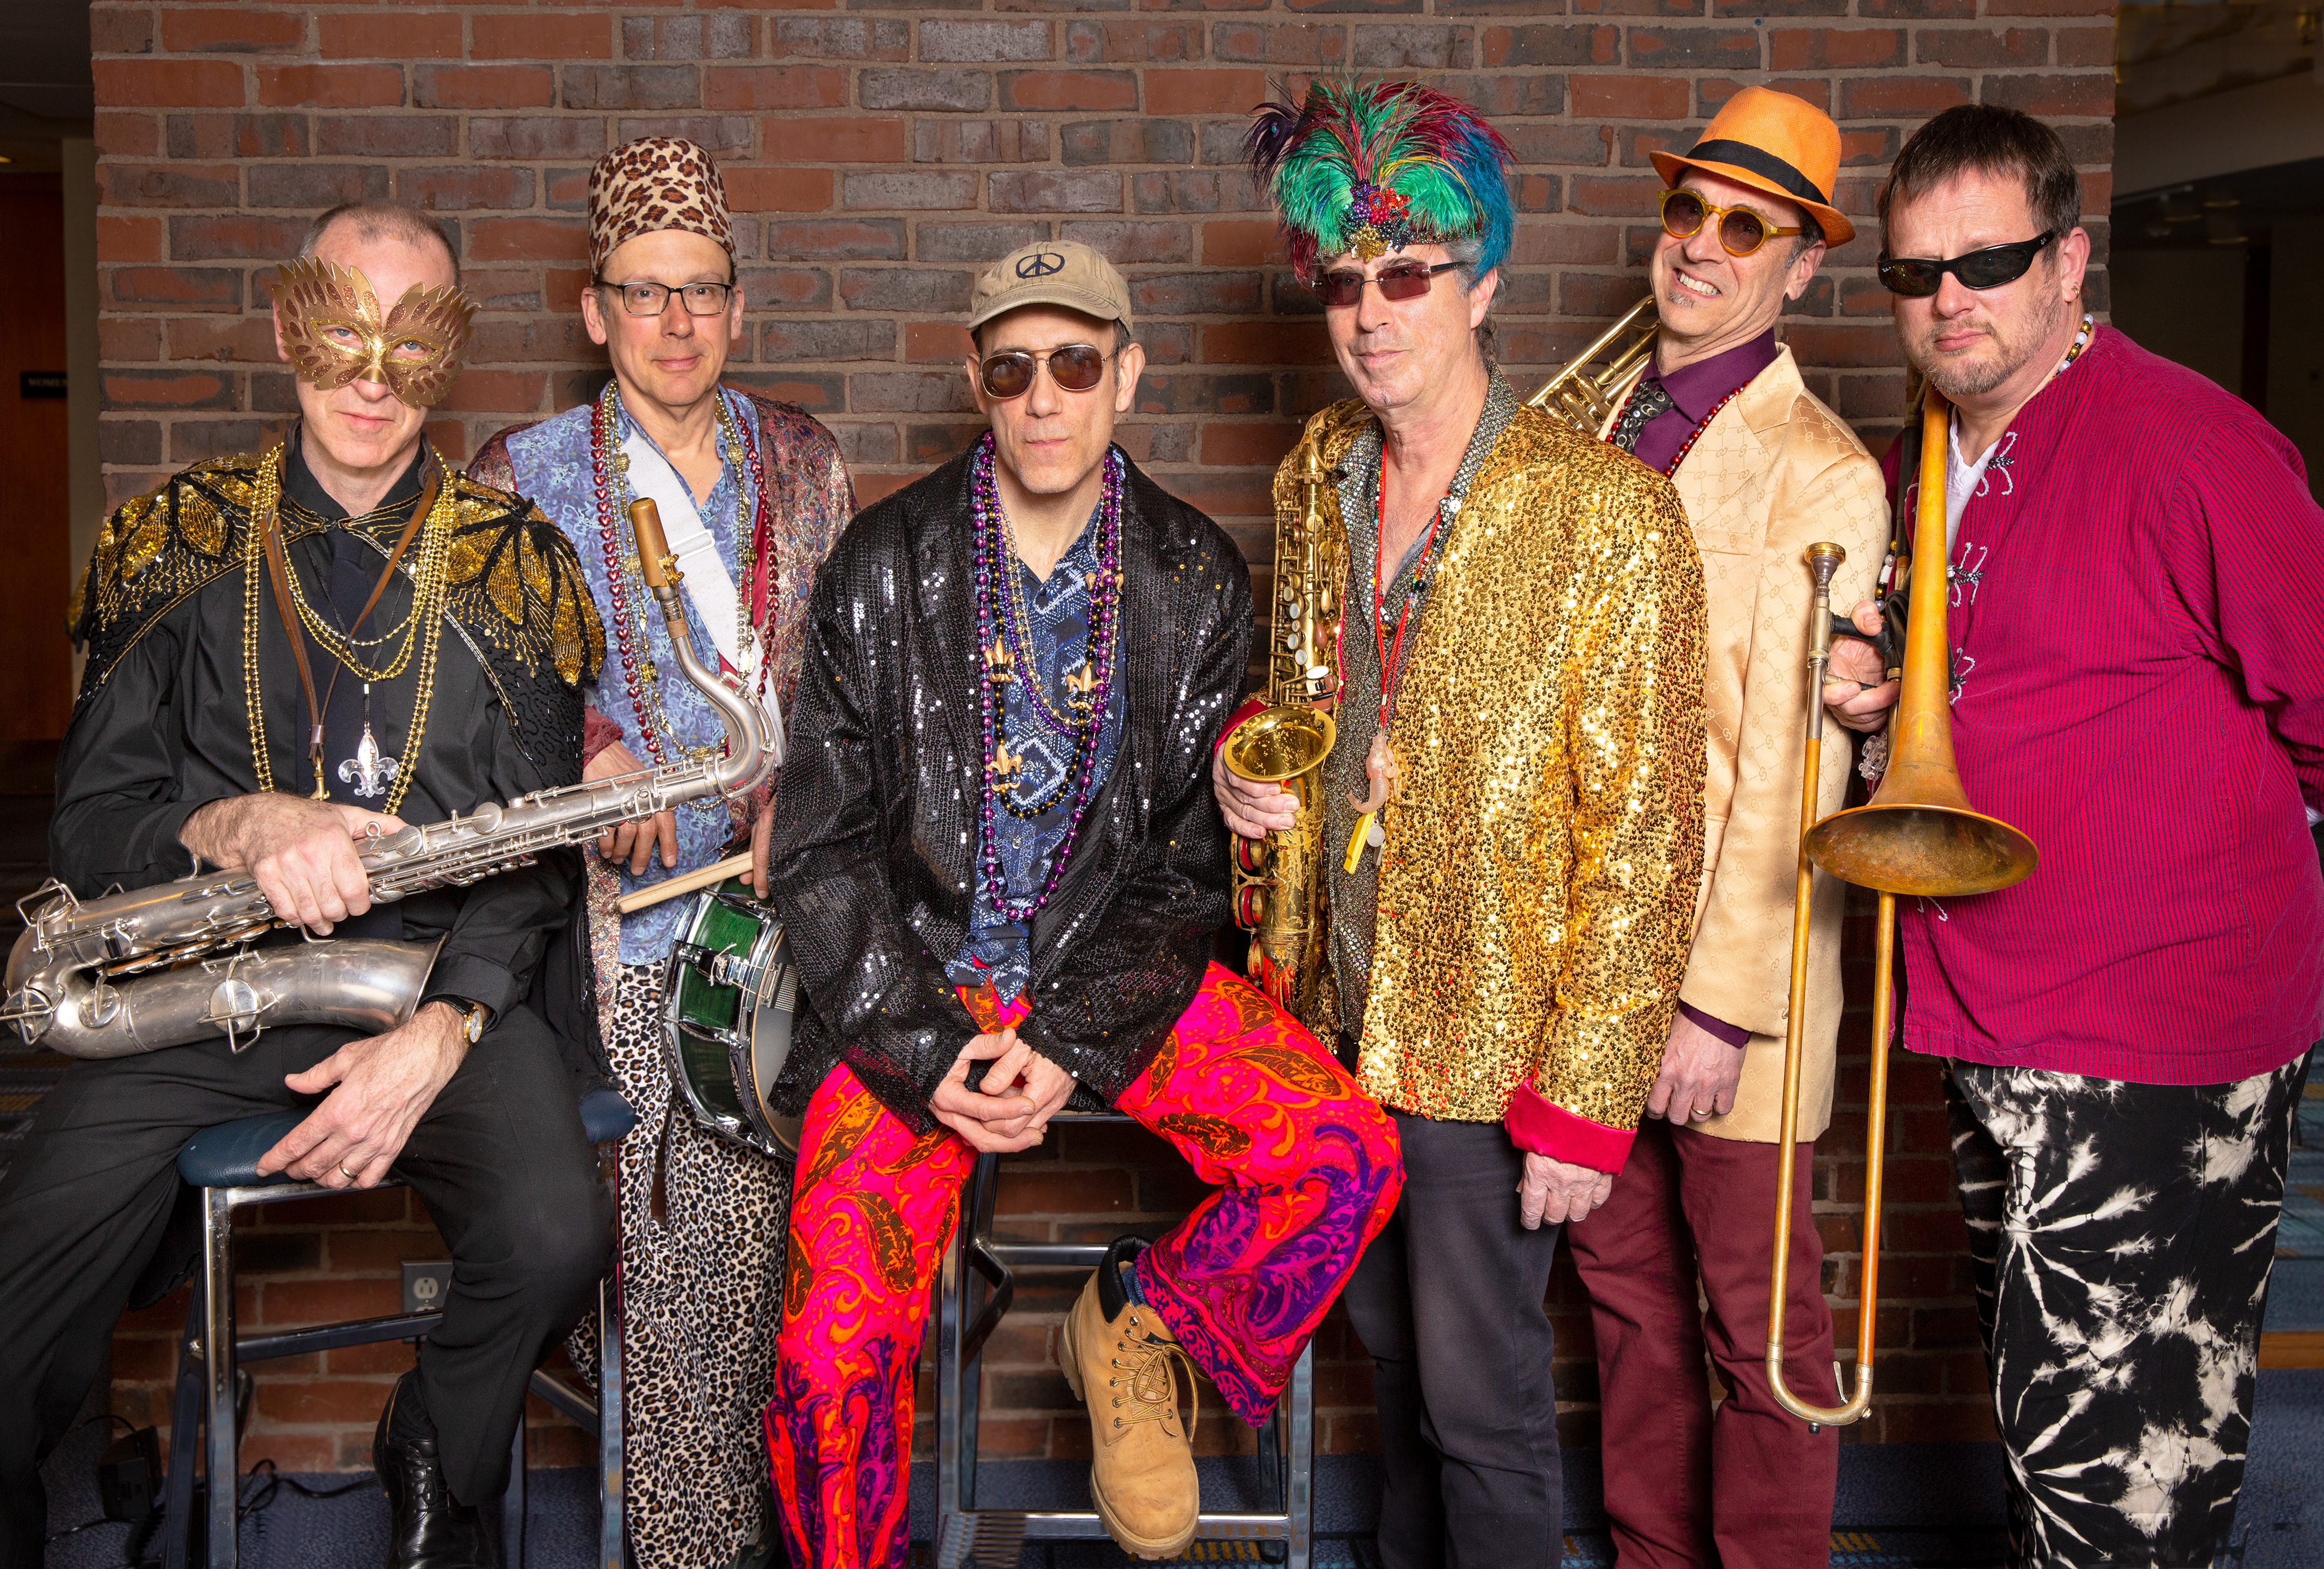 CANCELLED: Fat Tuesday With Ken Field's Revolutionary Snake Ensemble & Friends